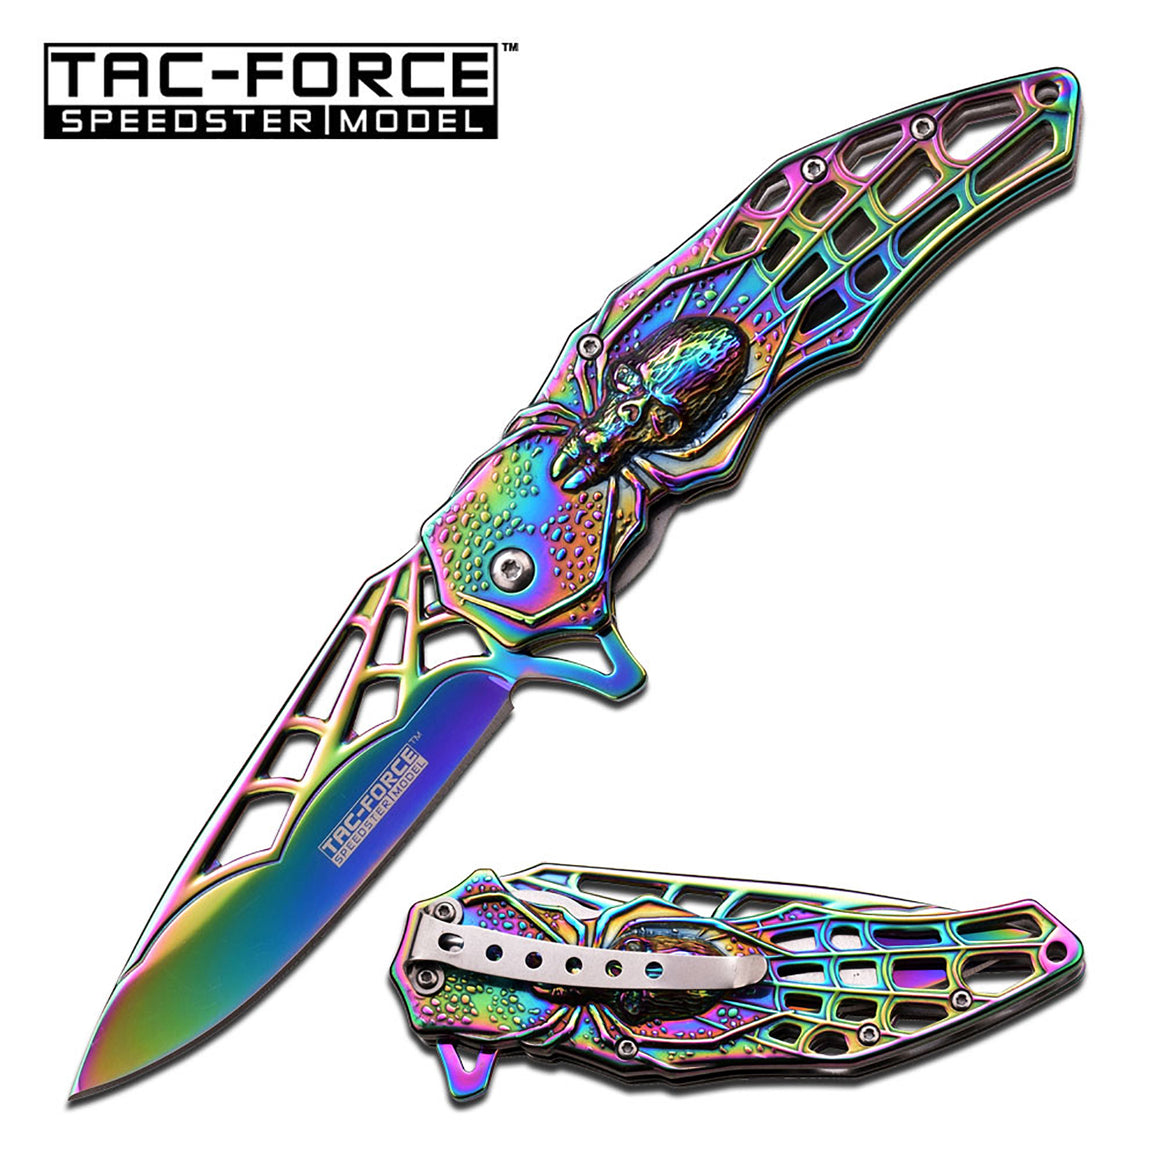 Tac-Force TF-856RB Spring Assisted Knife